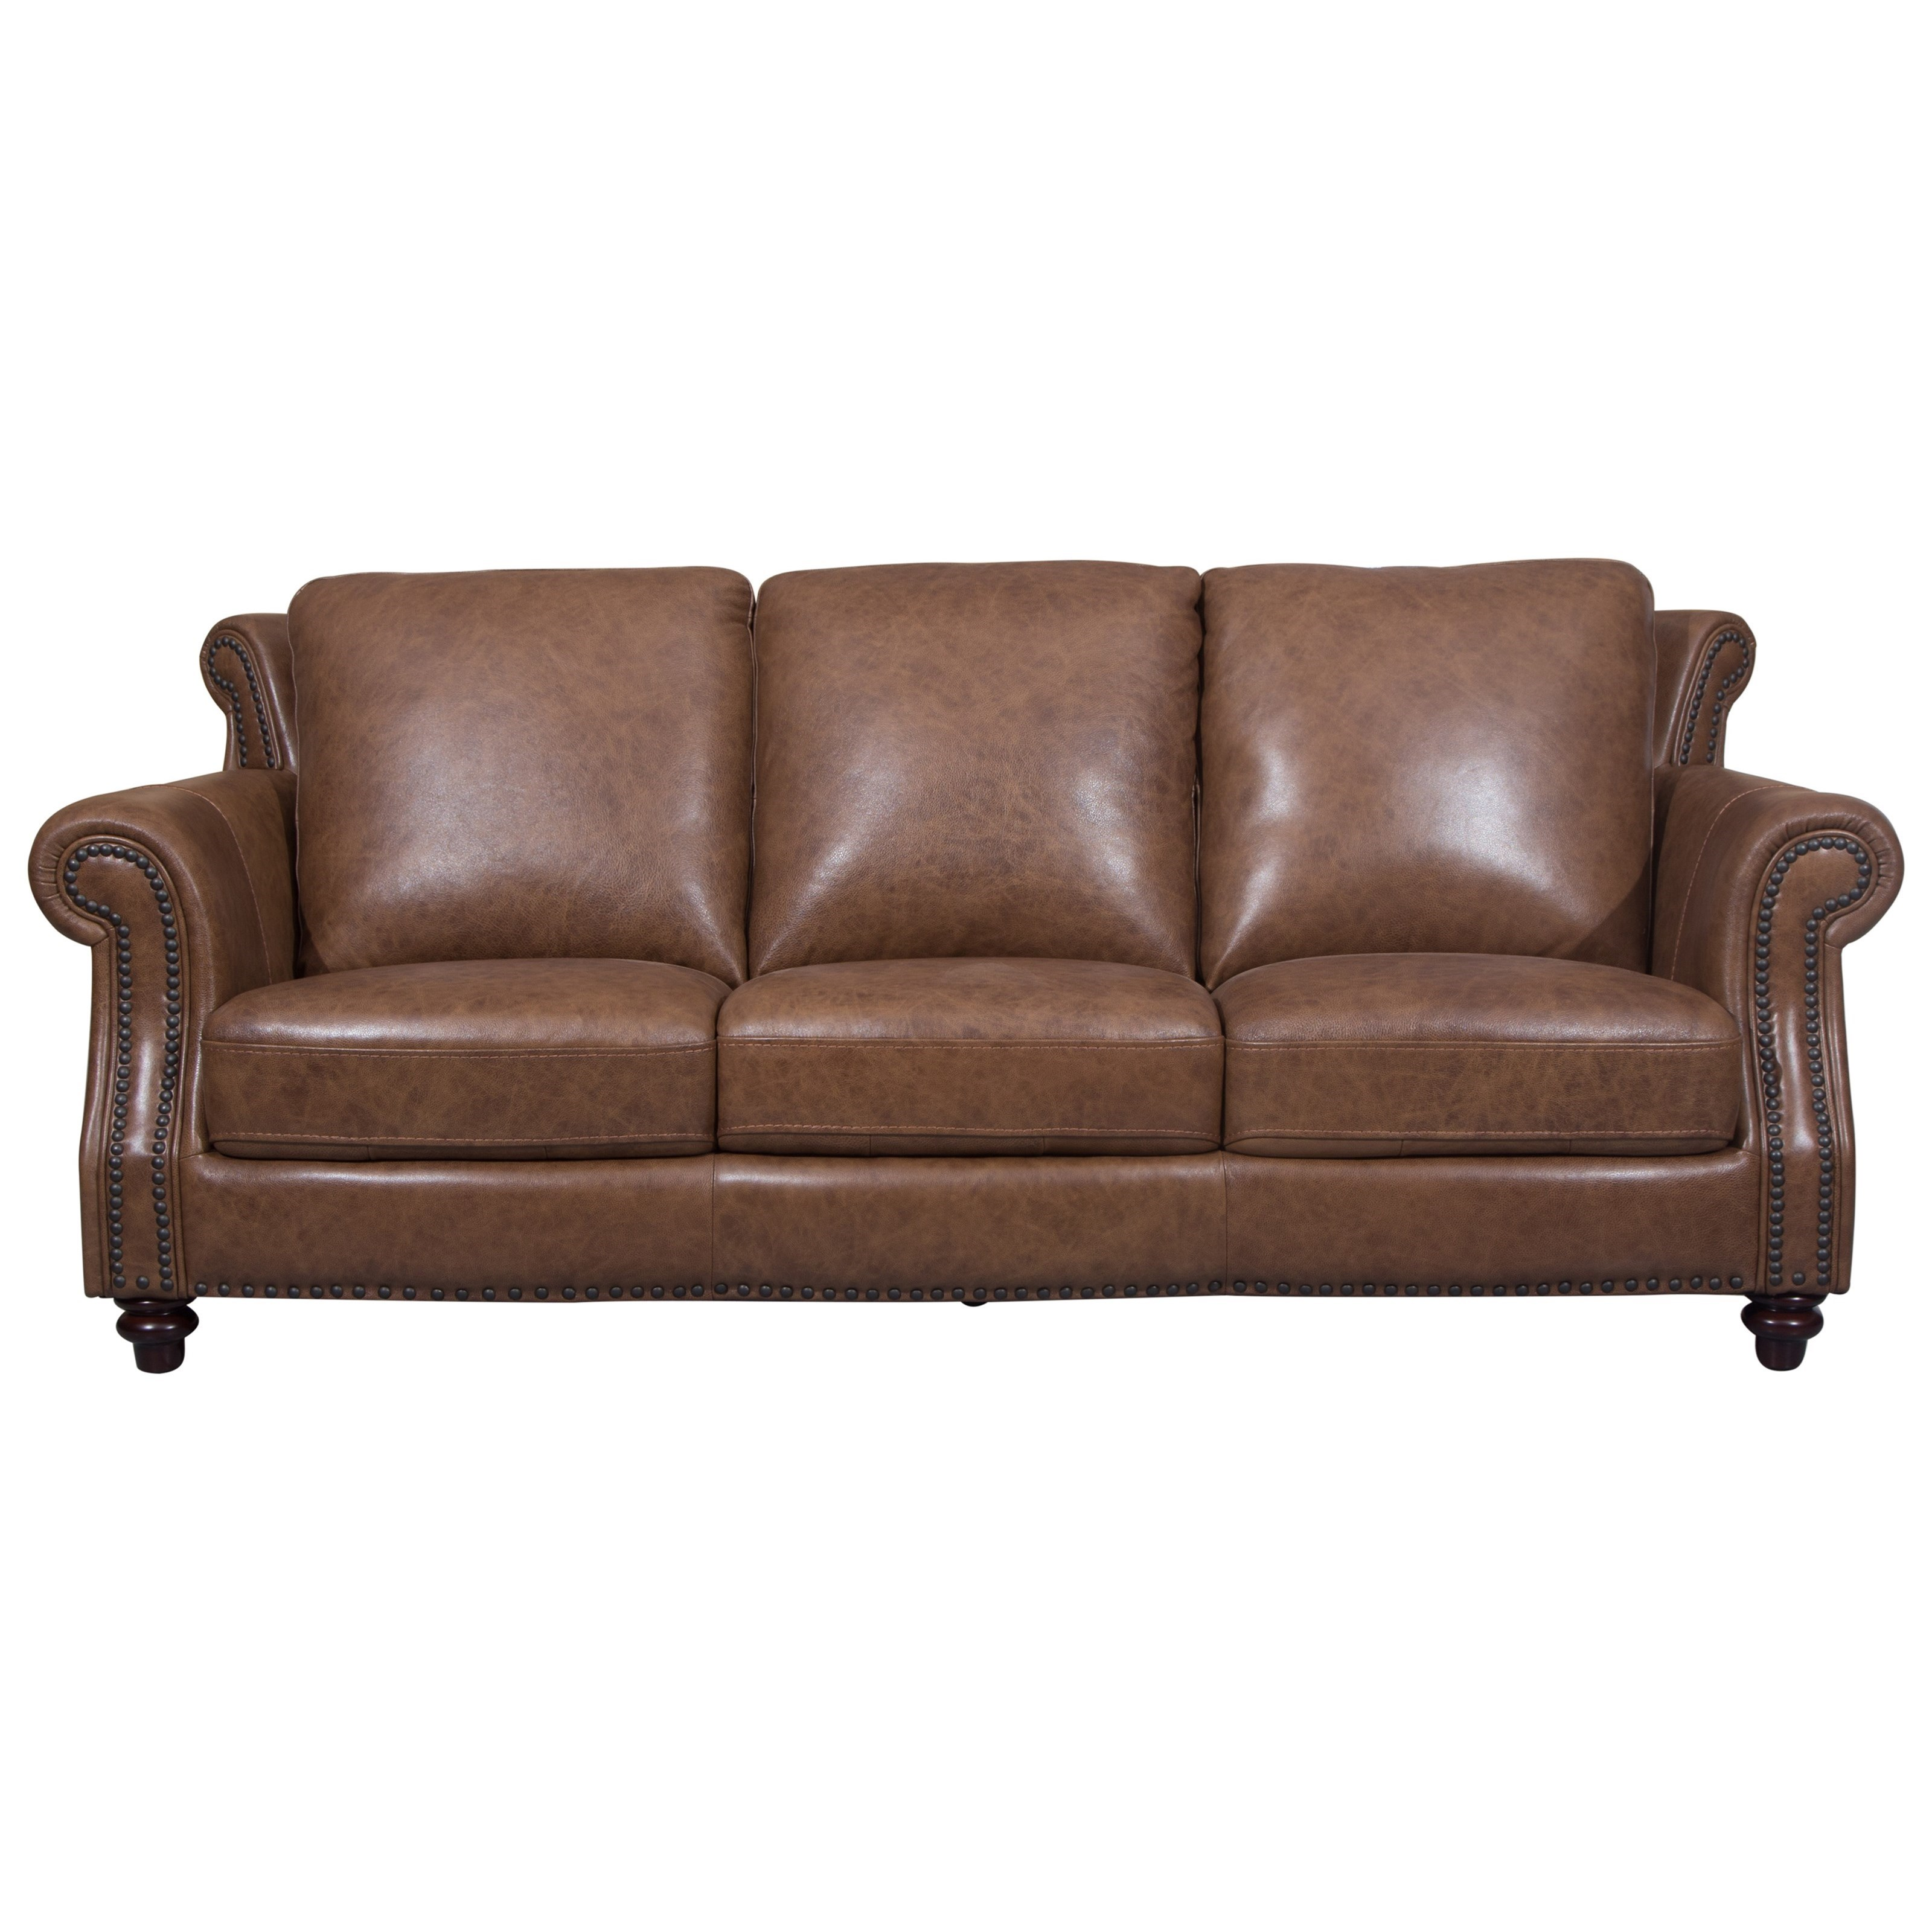 2115 Traditional Sofa by Cheers Sofa at Lagniappe Home Store